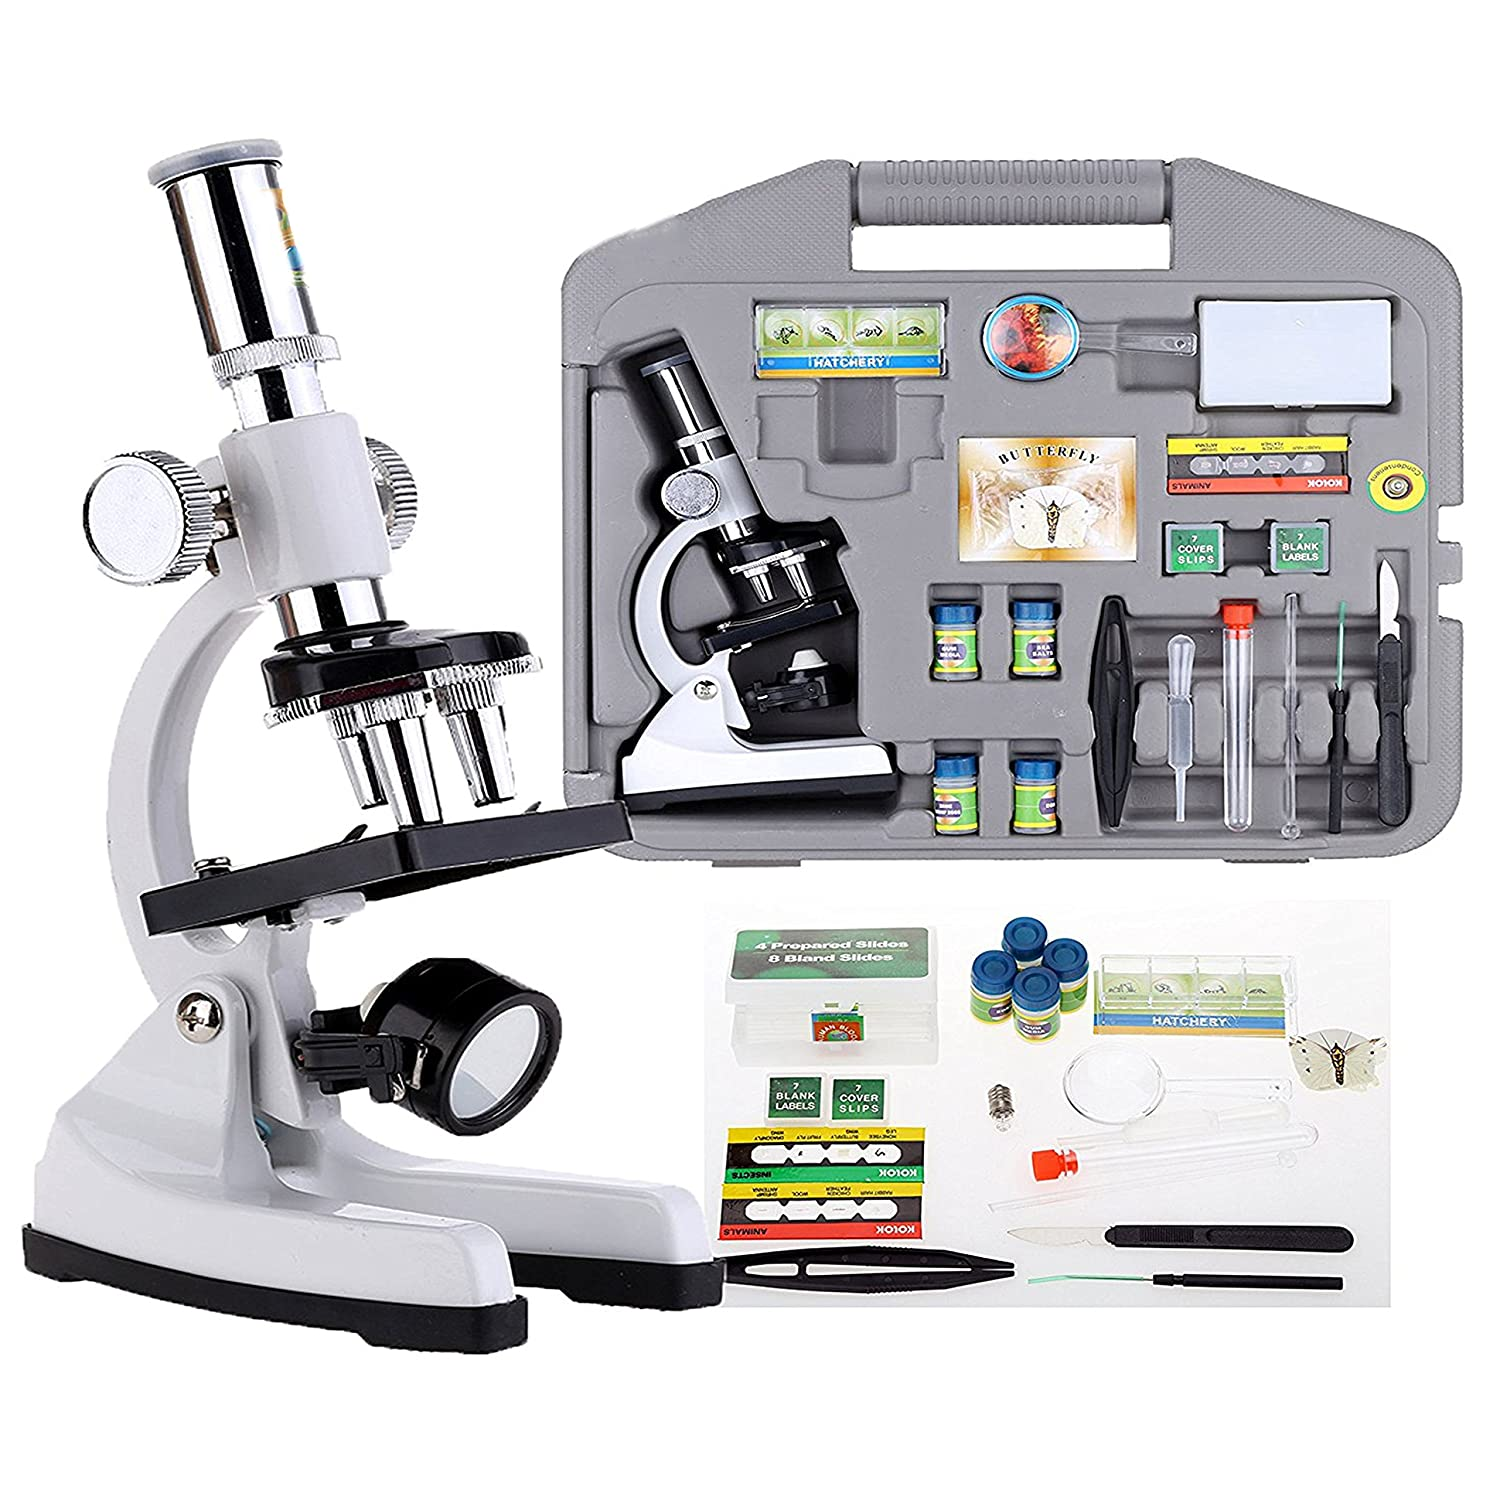 30 Piece 100-1200x Discovery Biological Microscope Advanced Science Set Kit Case The Magic Toy Shop SH1200